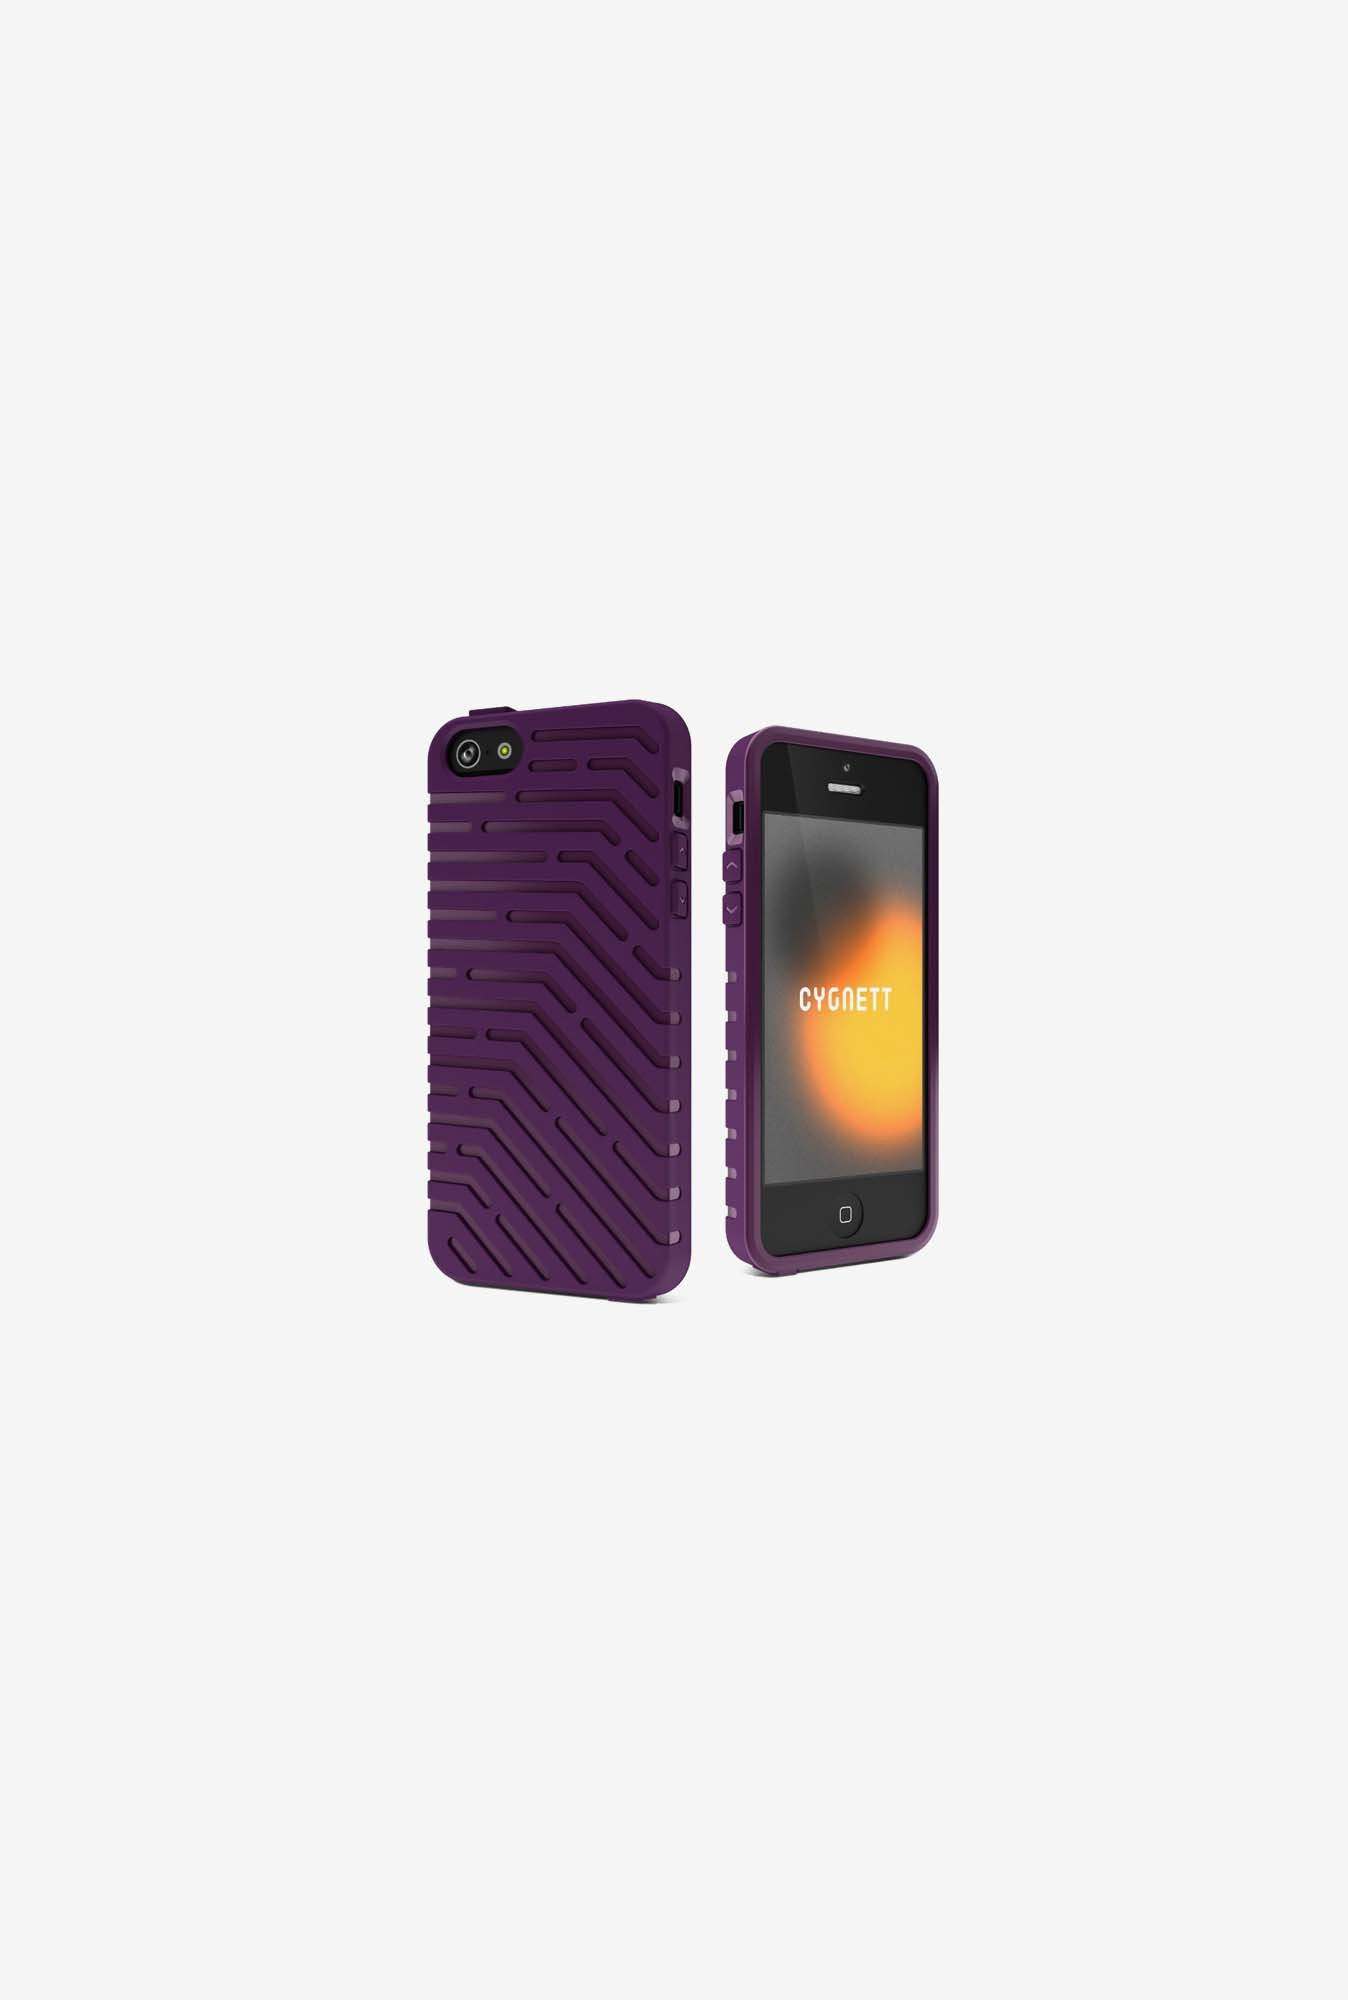 Cygnett CY0855CPVEC iPhone 5 Back Case Purple